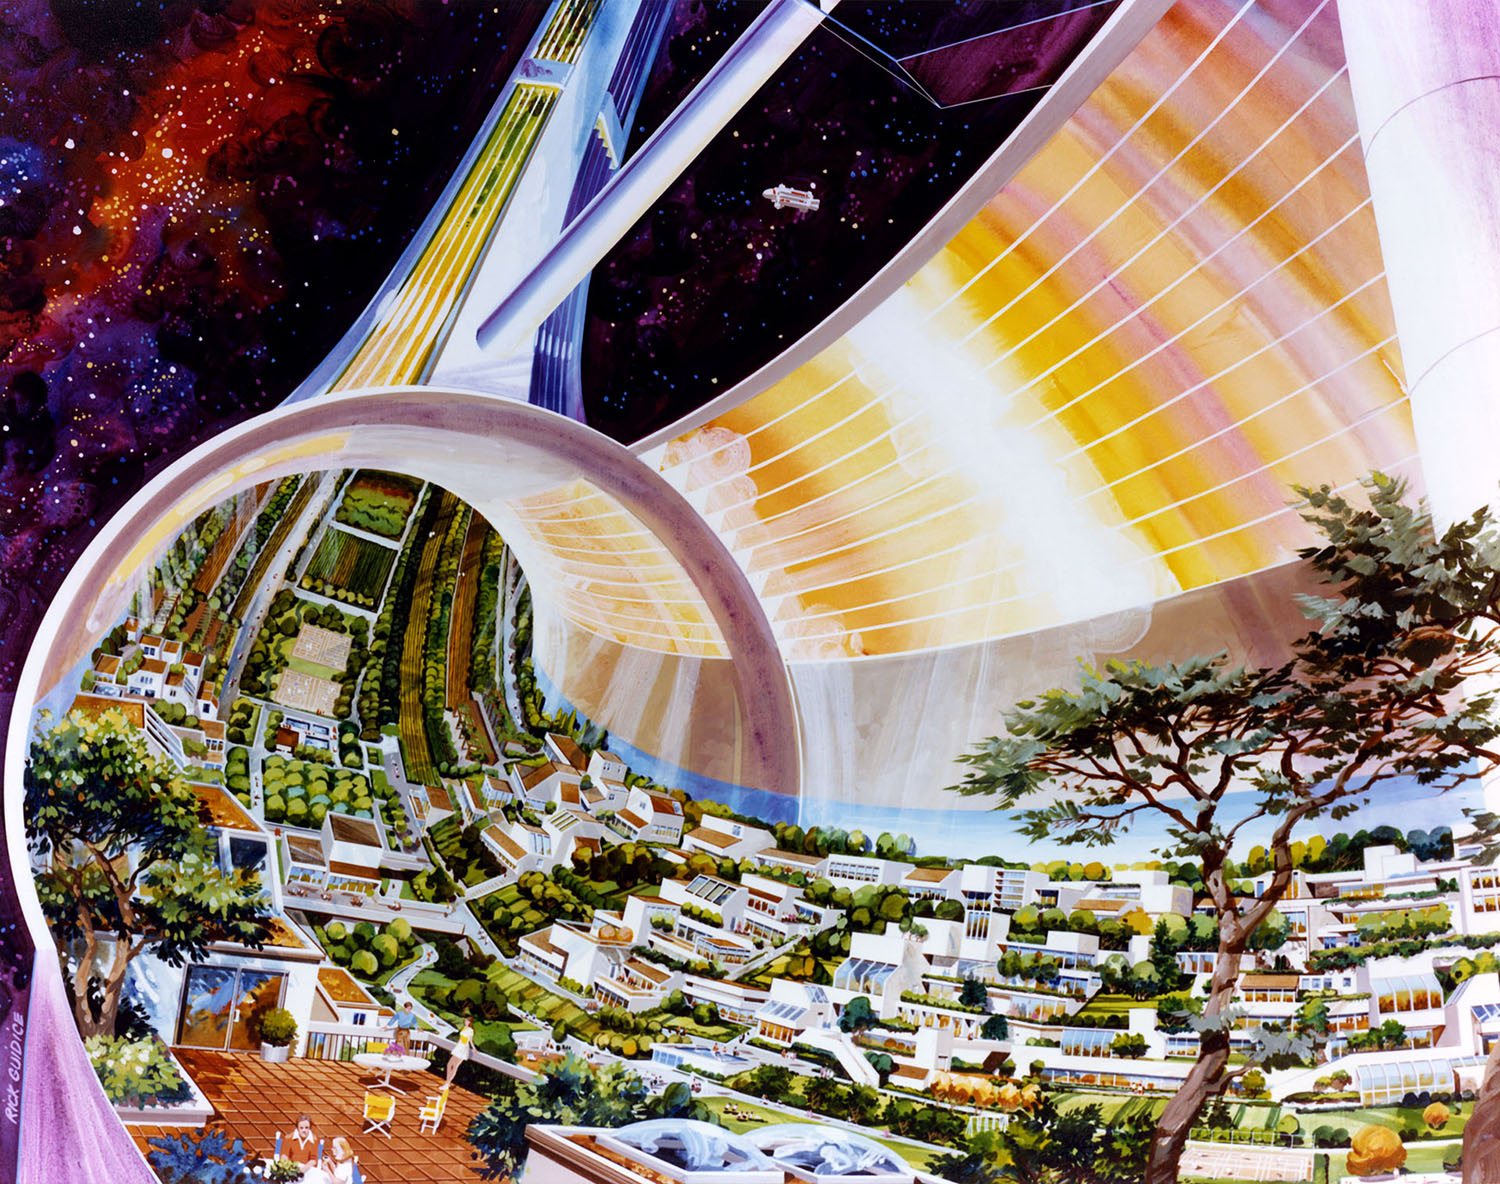 Painting of a torus-shaped space colony, part of the Far Out: Suits, Habs, and Labs for Outer Space show